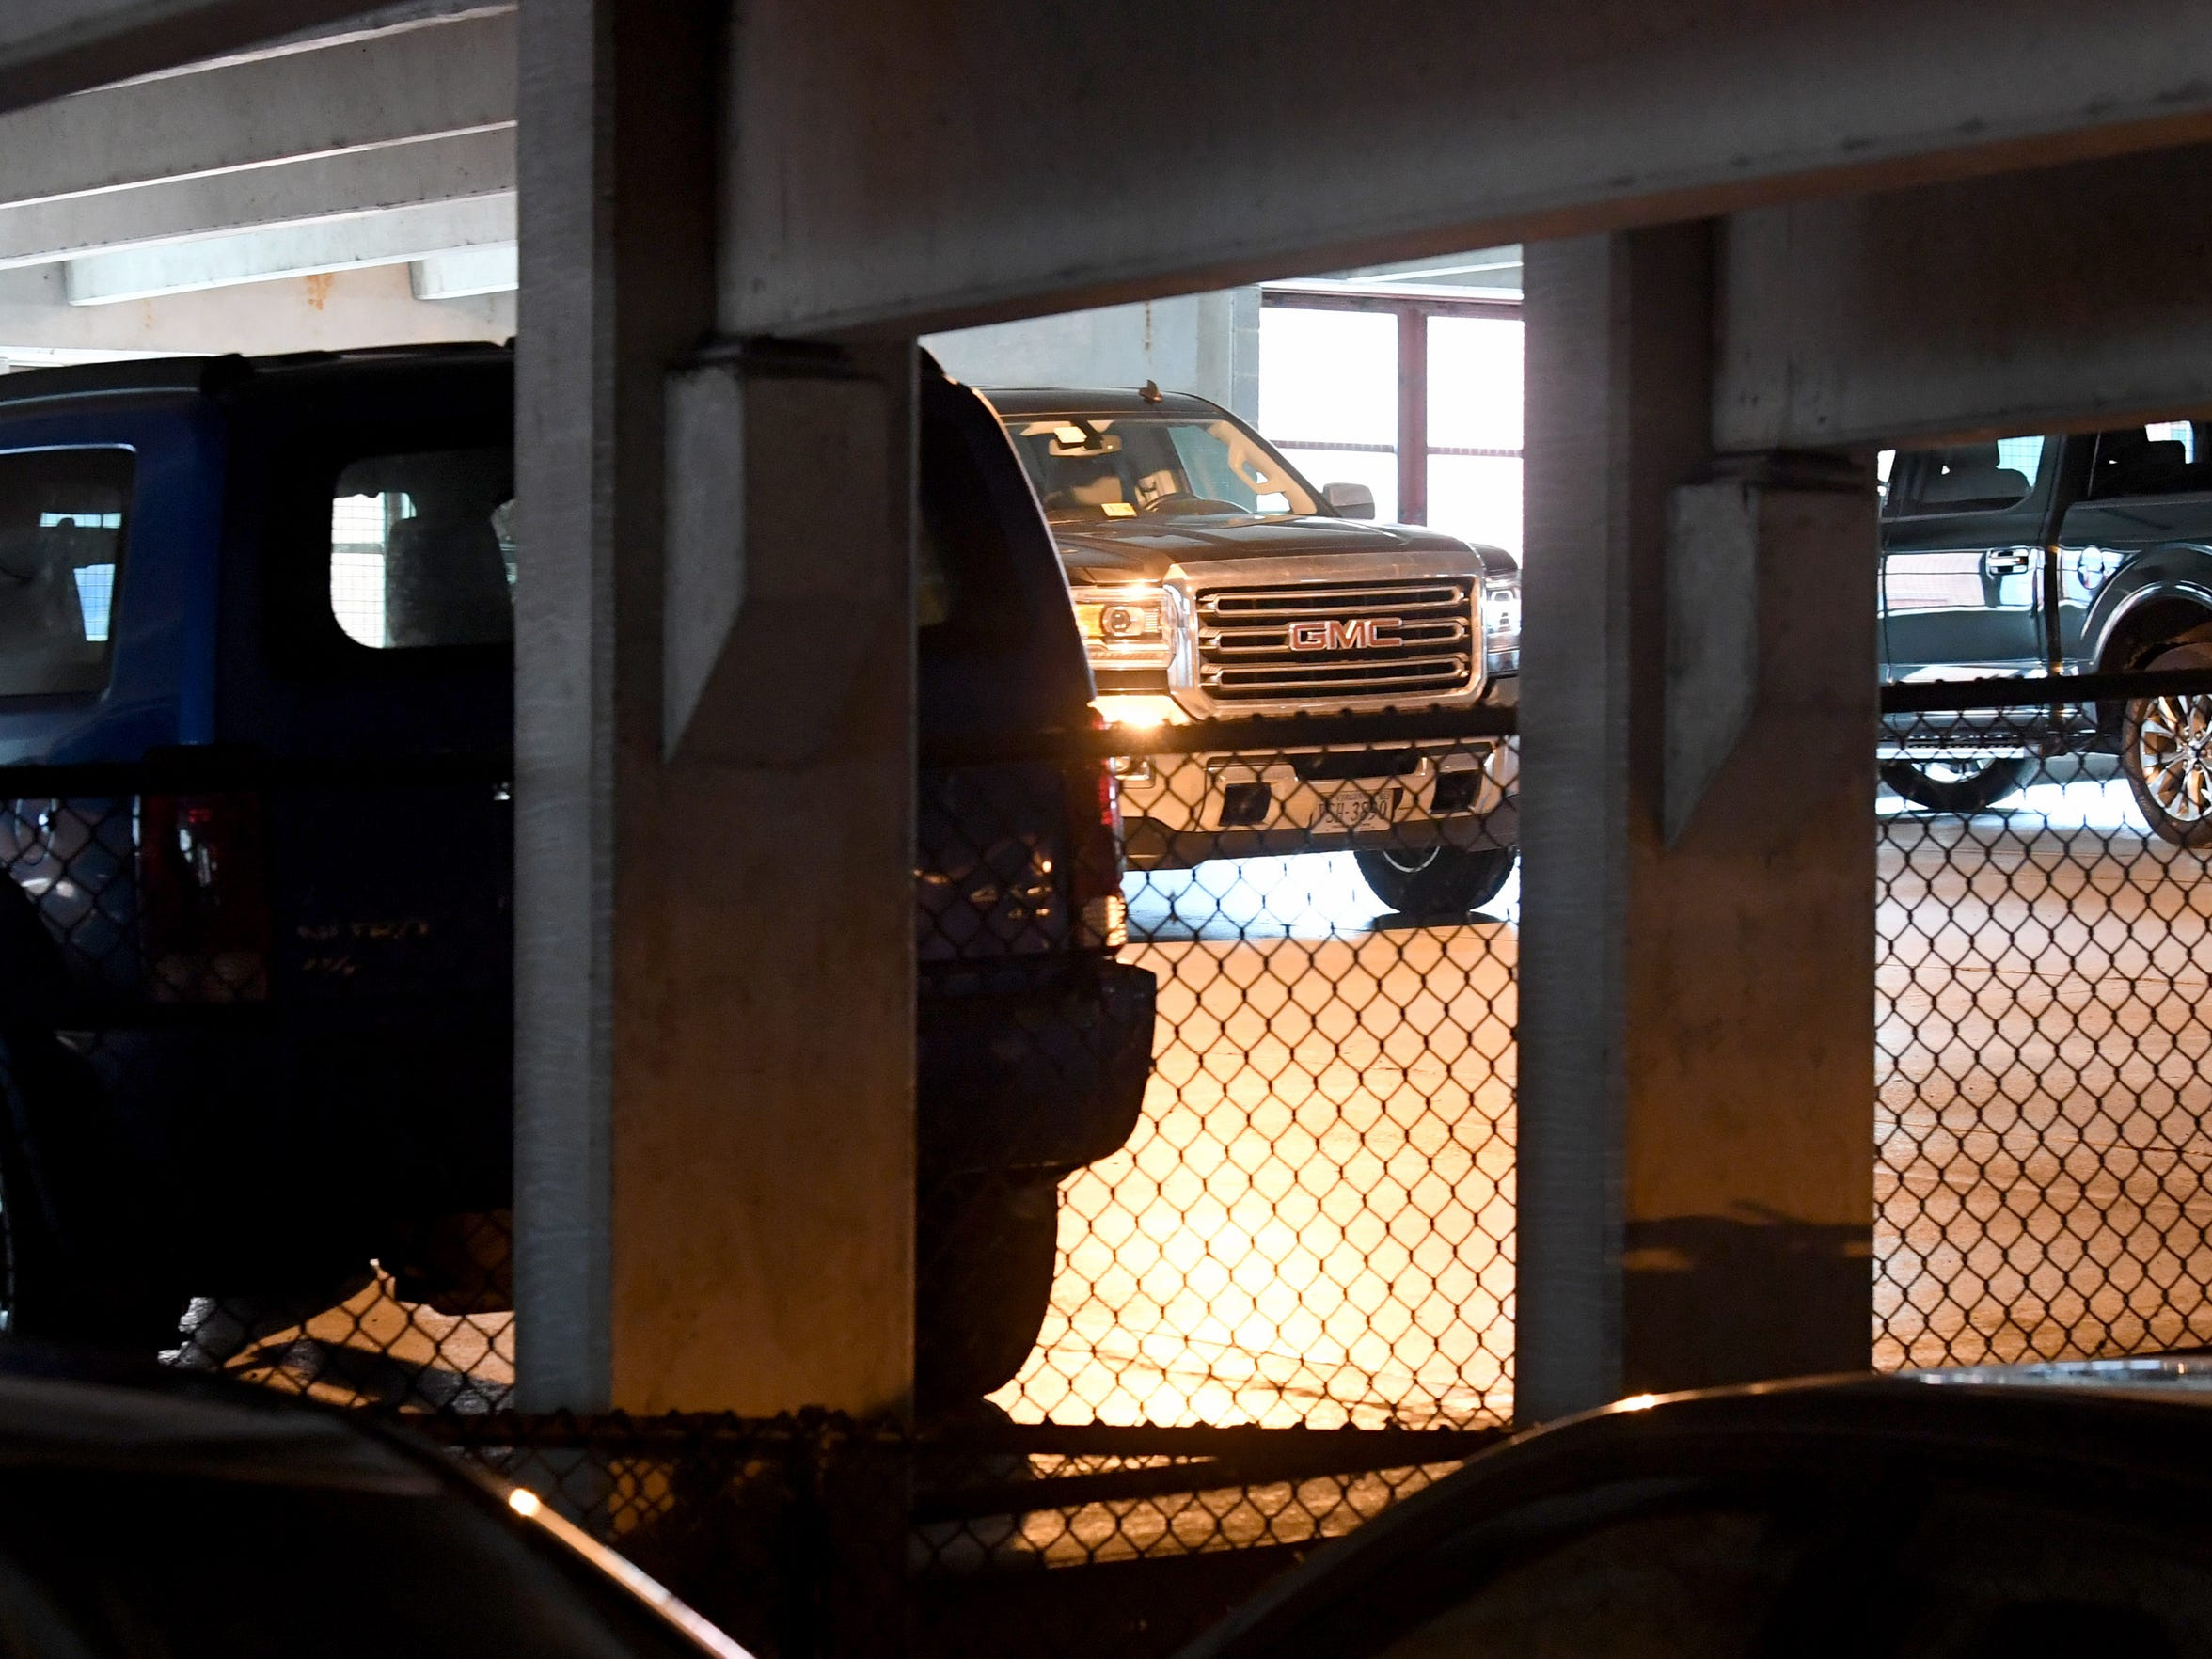 Cars parked inside the New Street parking garage in